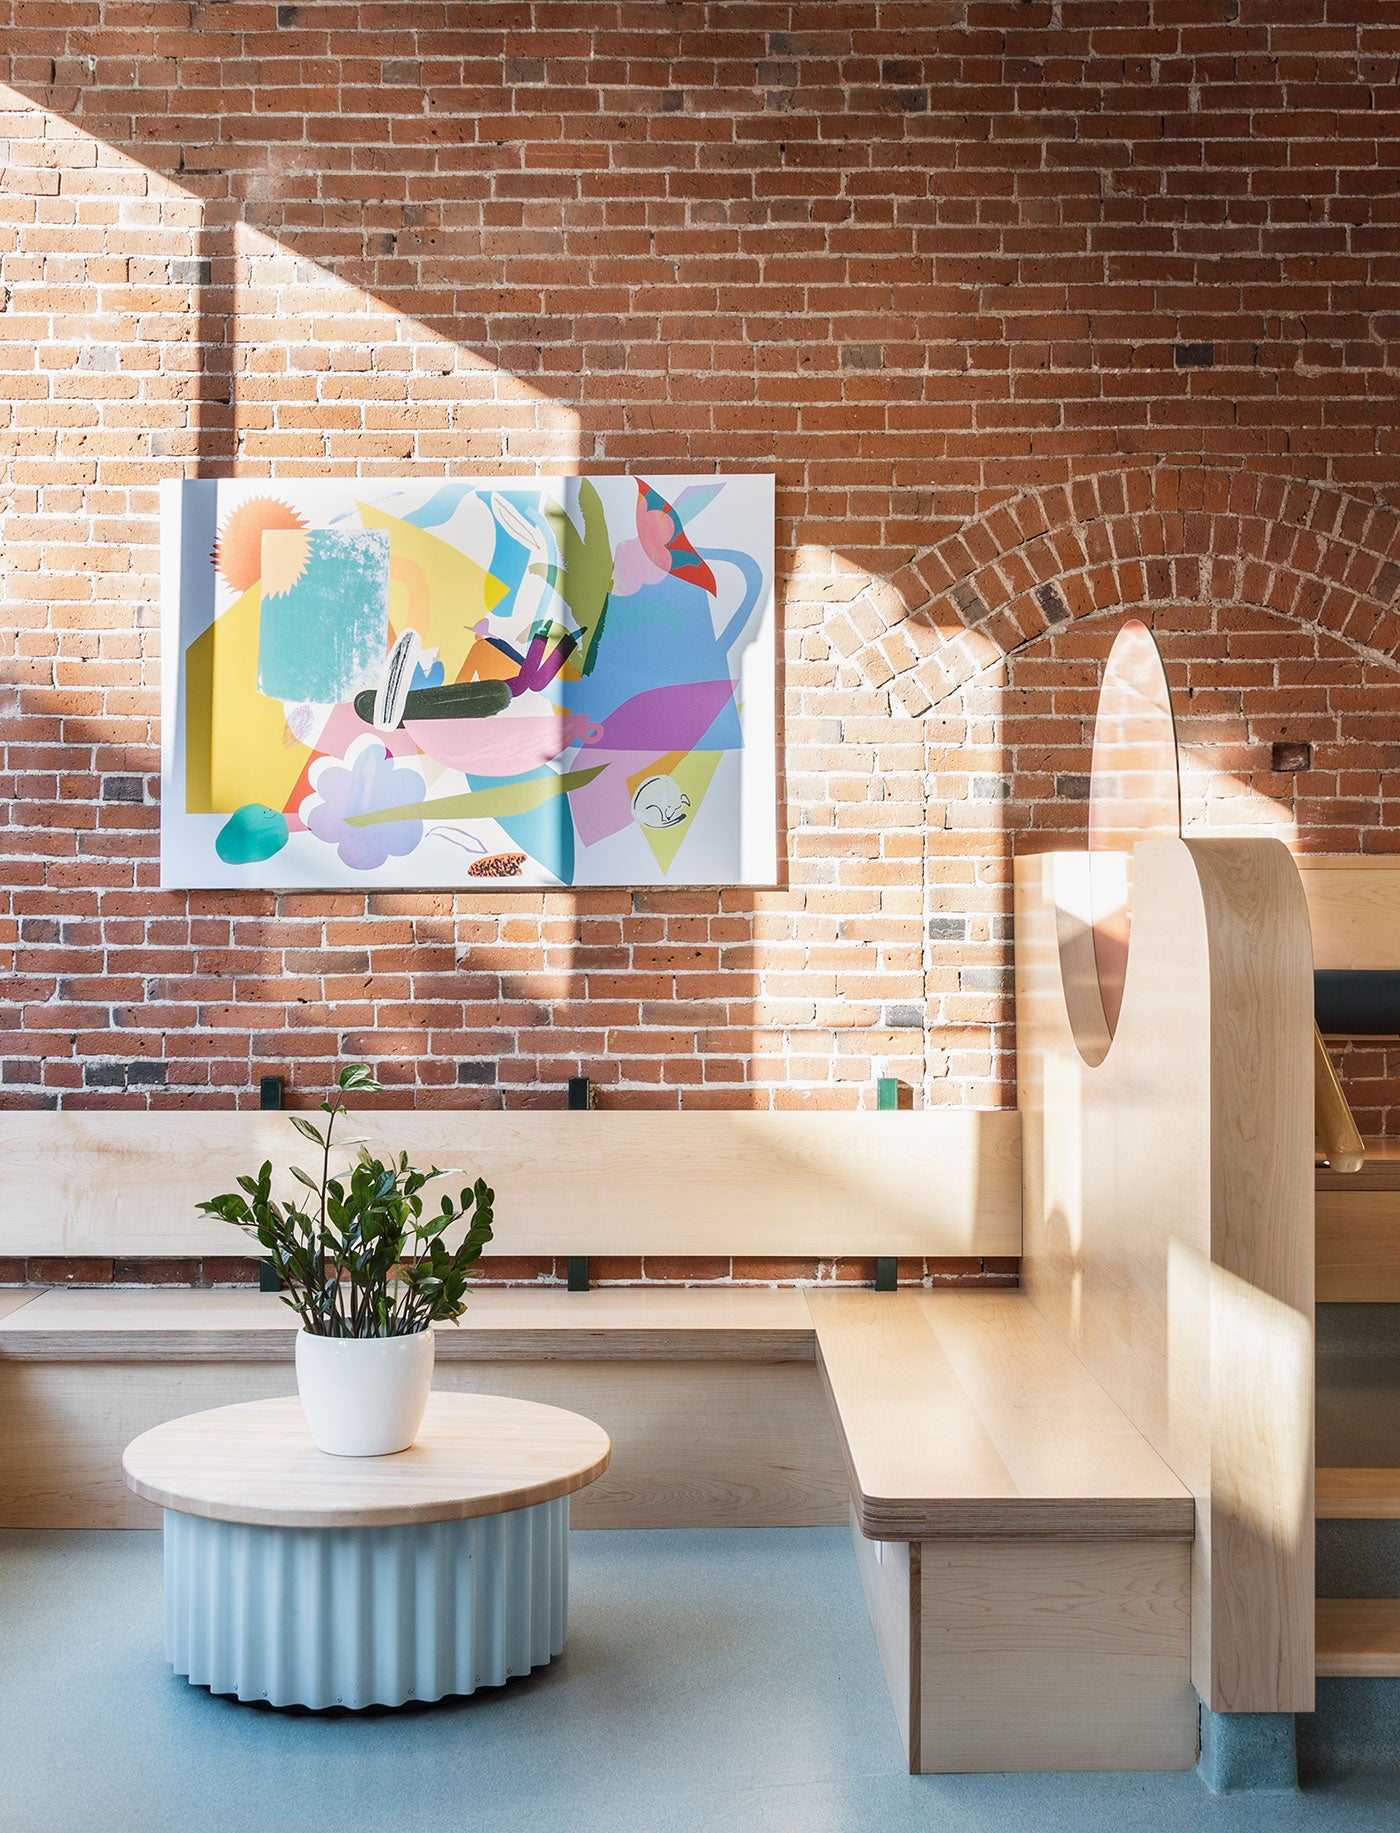 Bright modern cafe interior design featuring abstract art on brick wall